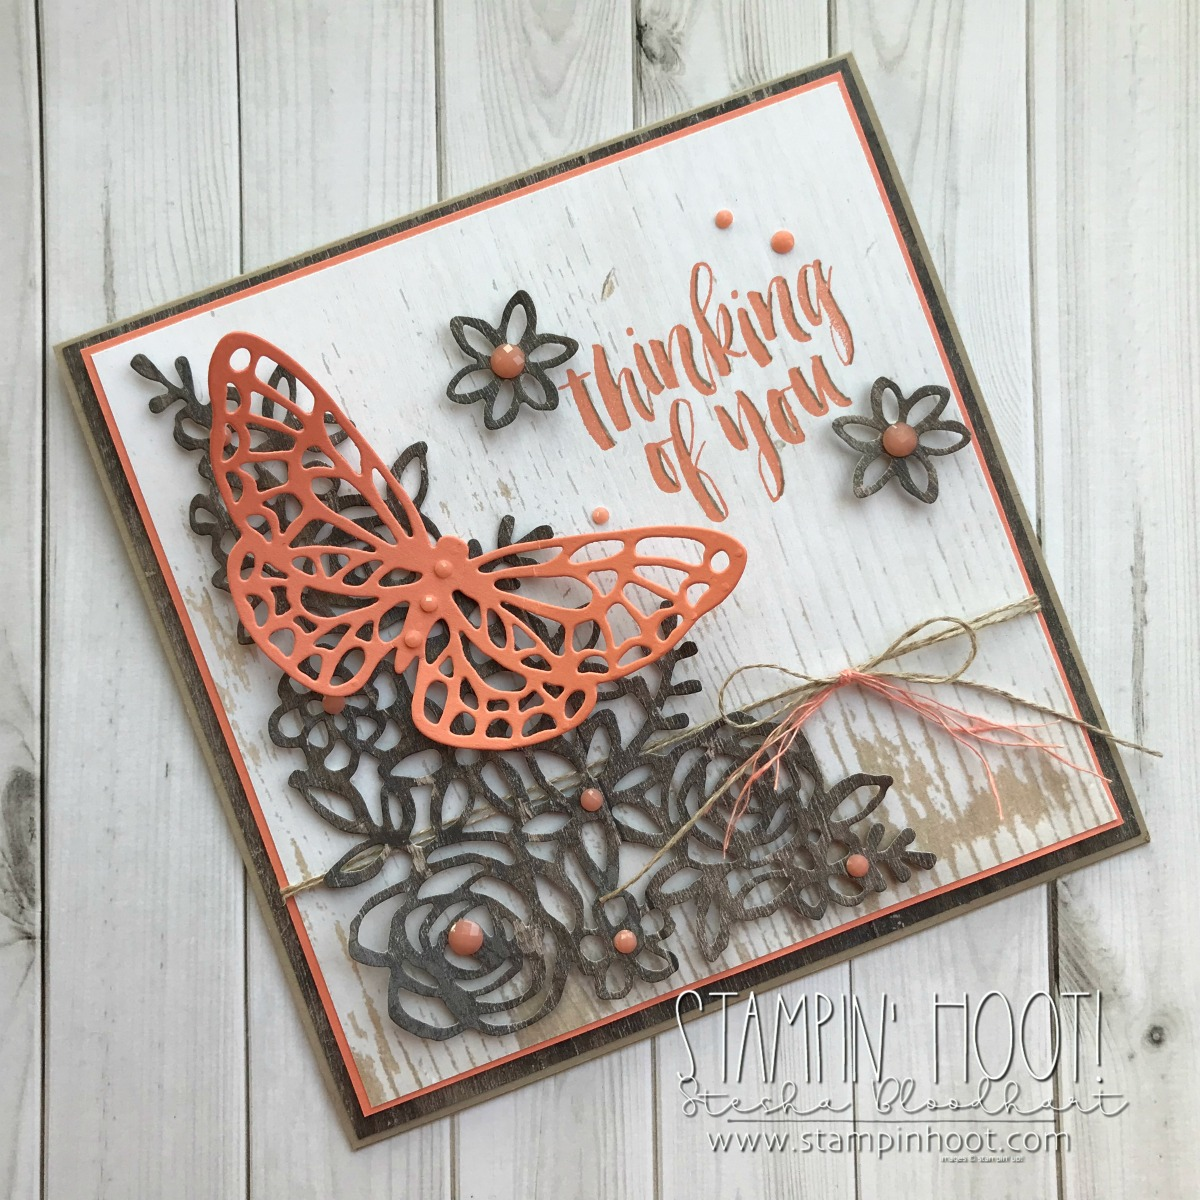 #tgifc160 Thinking of You Card with Wood Texture DSP & Springtime Impressions Thinlits Dies #steshabloodhart #stampinhoot